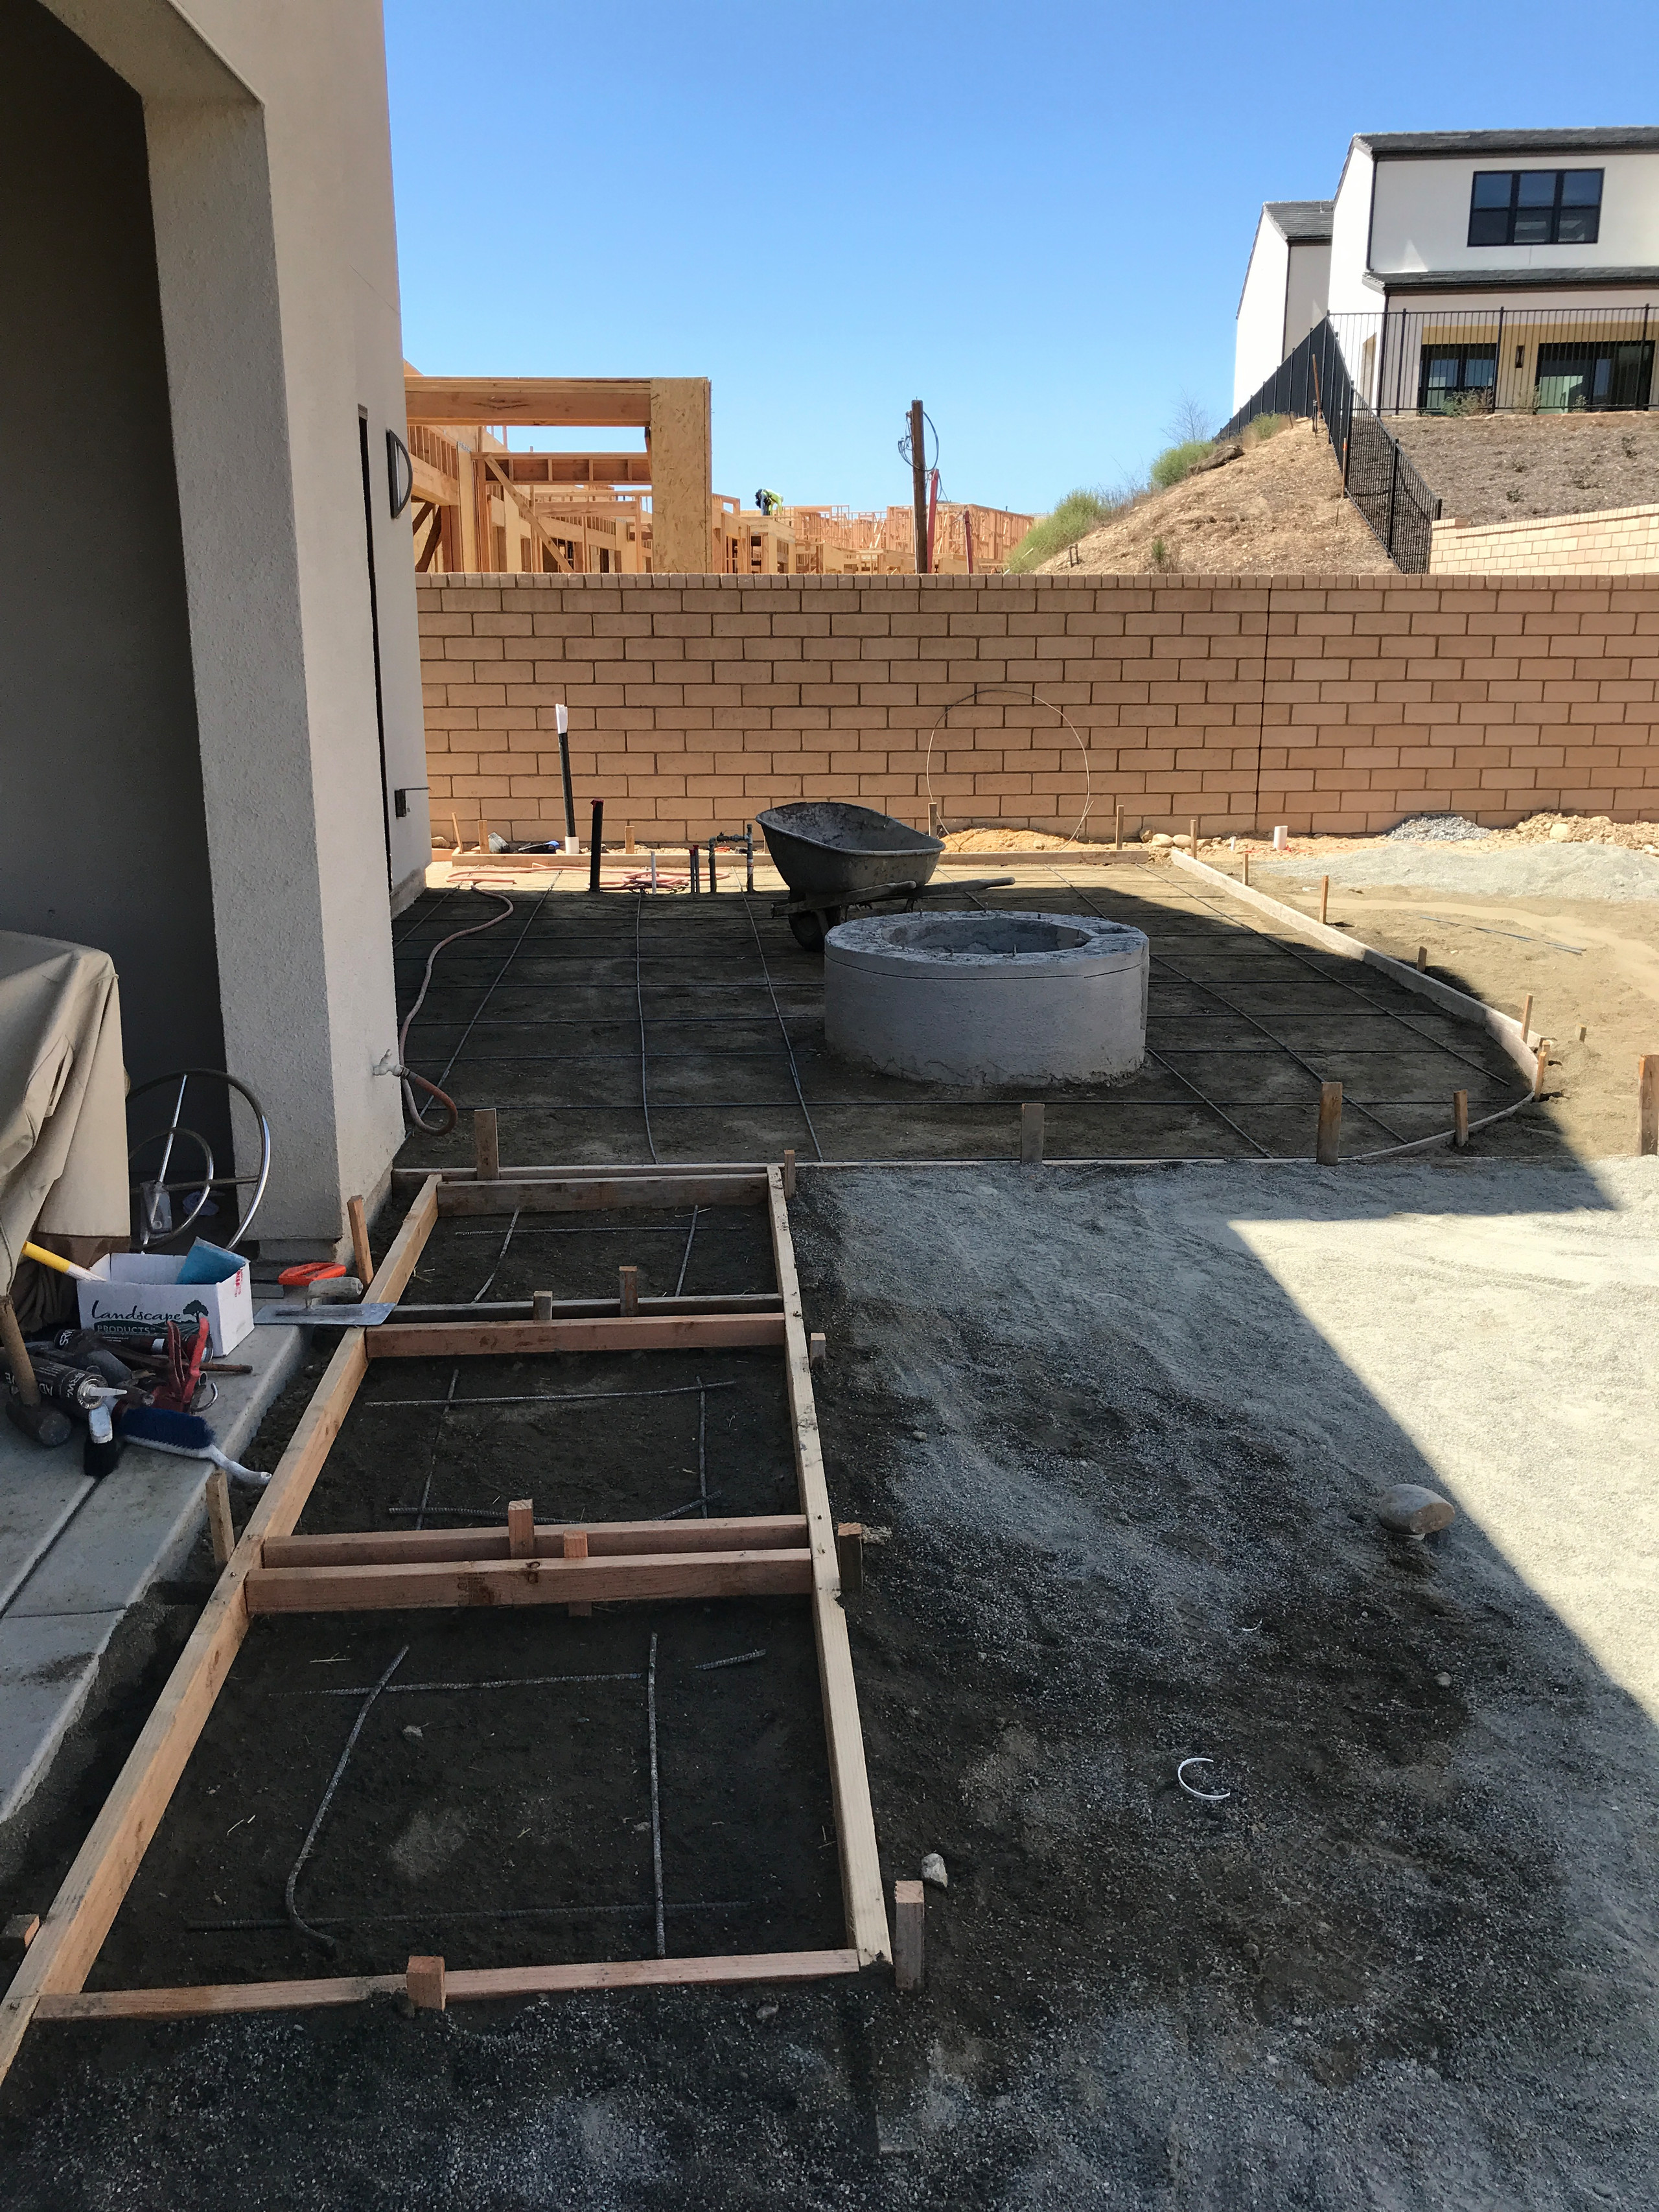 Setting Up Concrete Form Boards